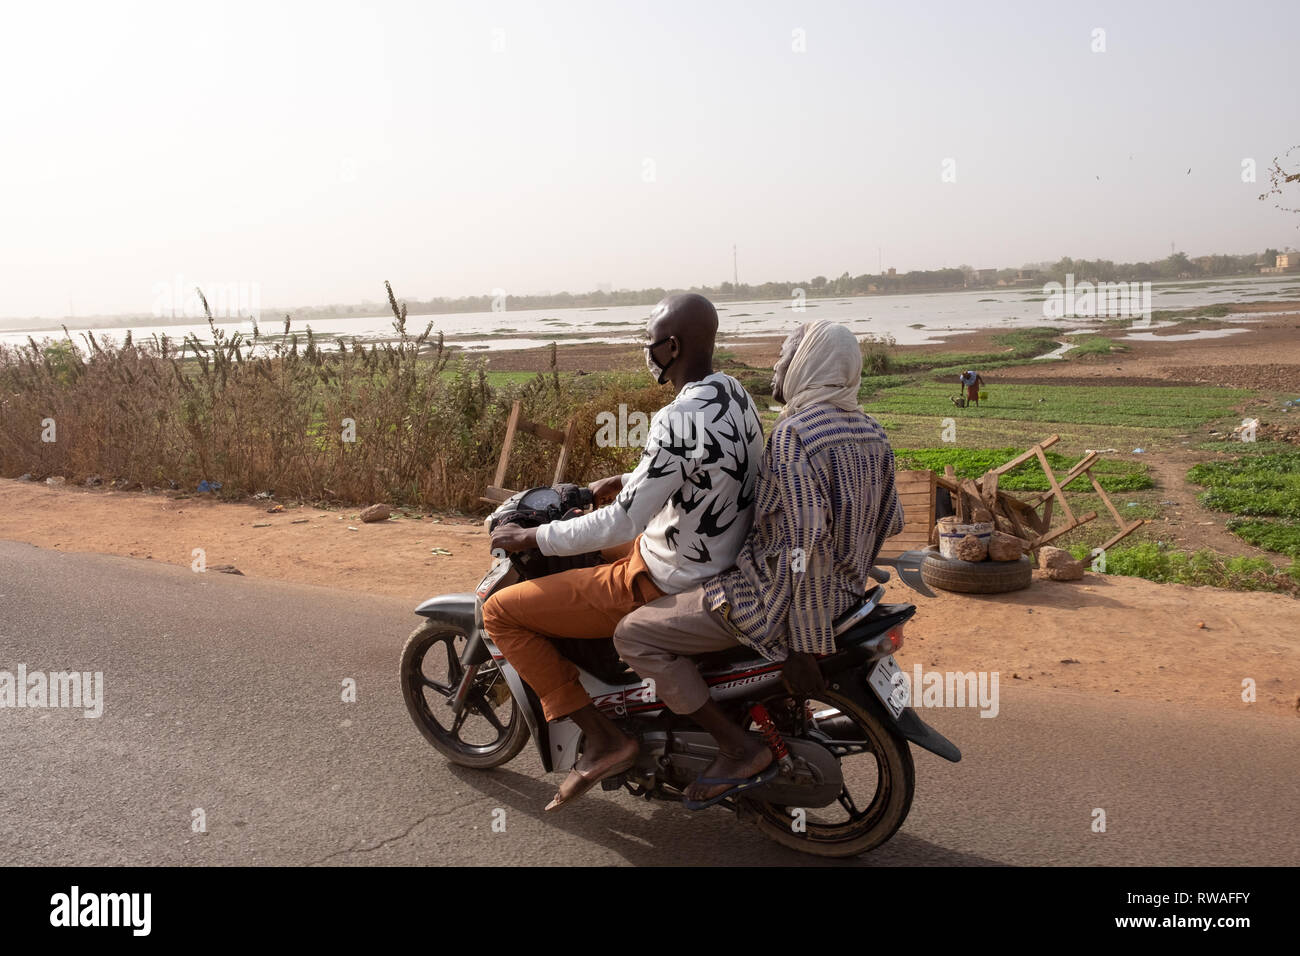 MA man and a woman ride on a motorcycle in Bobo-Dioulasso, a part of western Burkina Faso that is affected by insecurity and jihadist terrorism Stock Photo